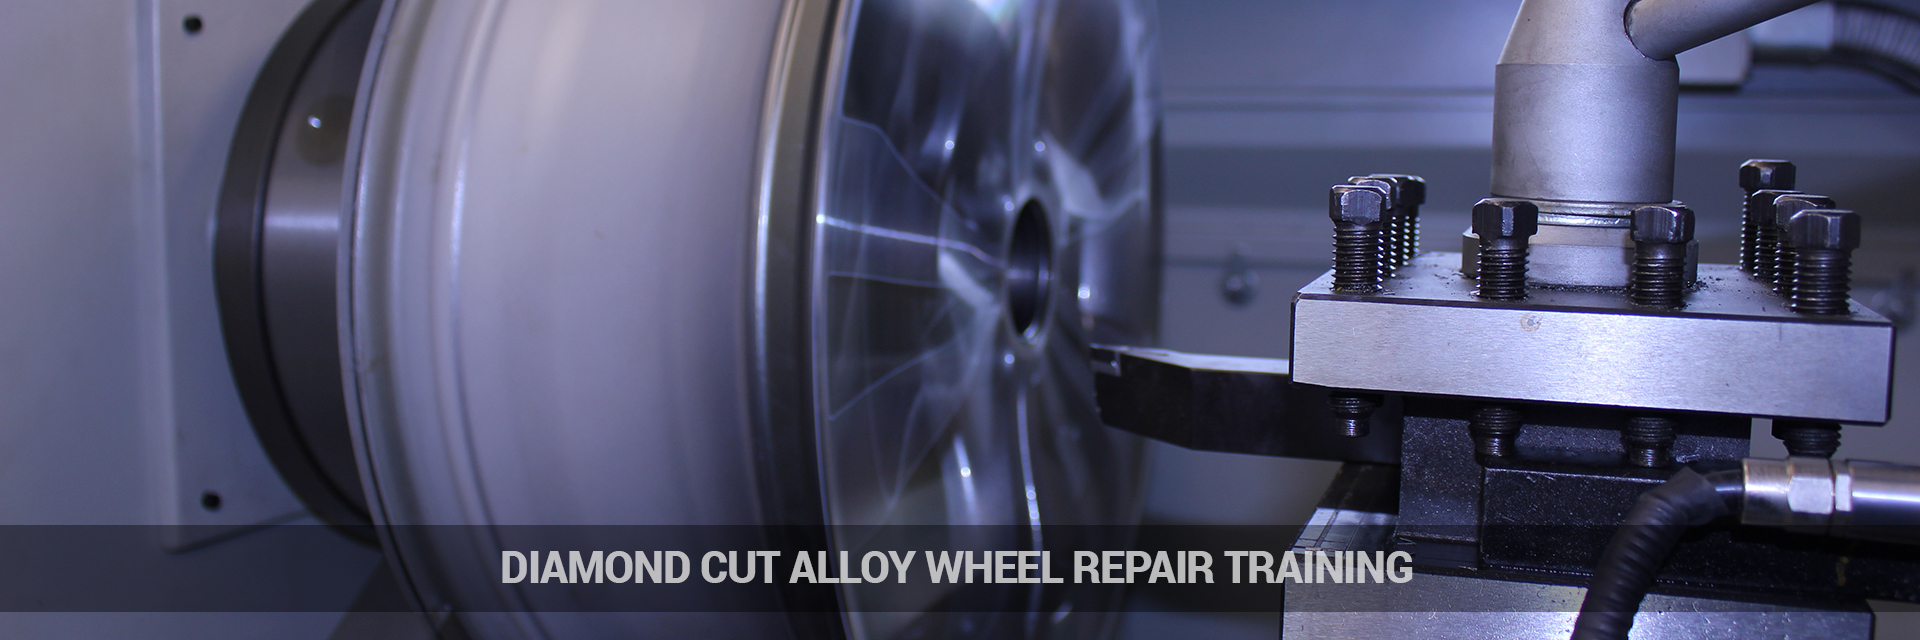 Diamond Cutting Alloy Wheel Repair Training from Ayce Systems